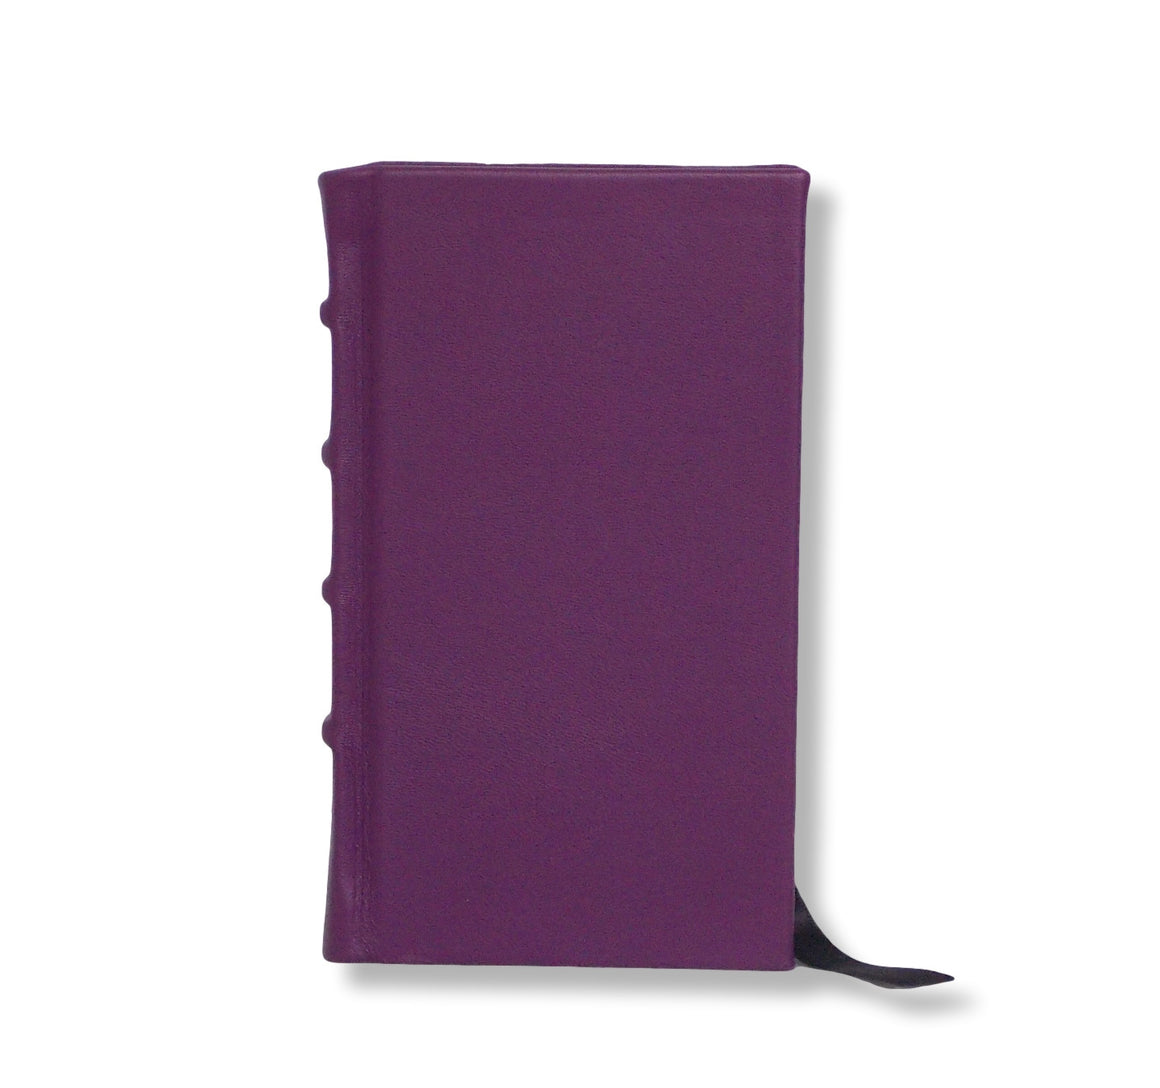 Purple leather slimline journal